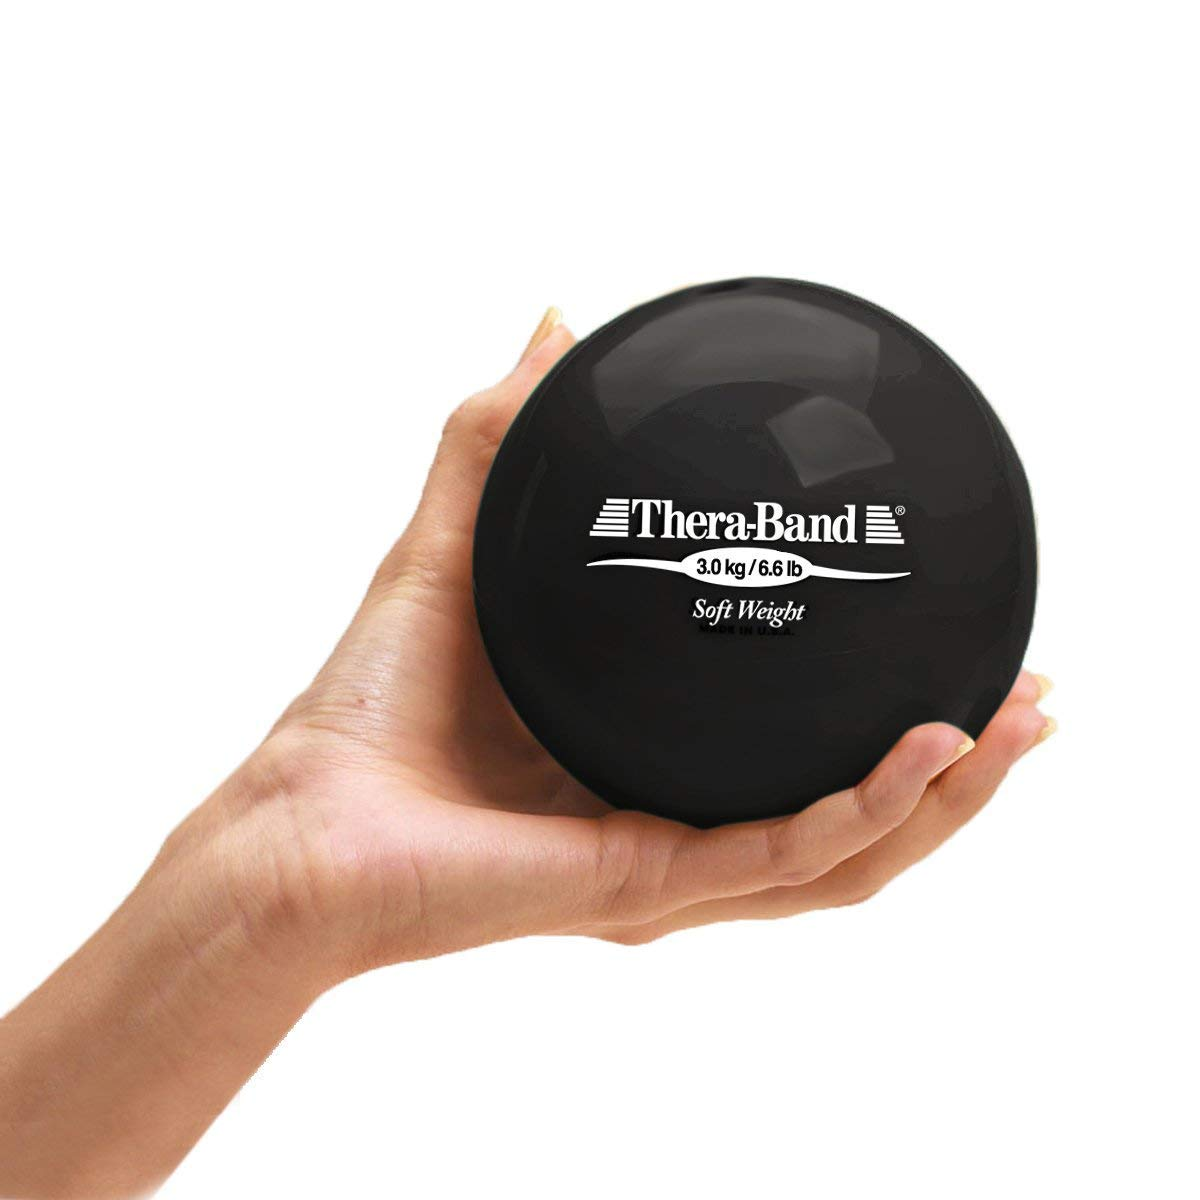 Biofreeze Soft Weight, Hand Held Ball Shaped Isotonic Weight for Strength Training Rehab Exercises, Pilates, Yoga, Toning Workouts, Home Exercise Equipment Balls, 4.5 Diameter, Black, 6.6 Pounds